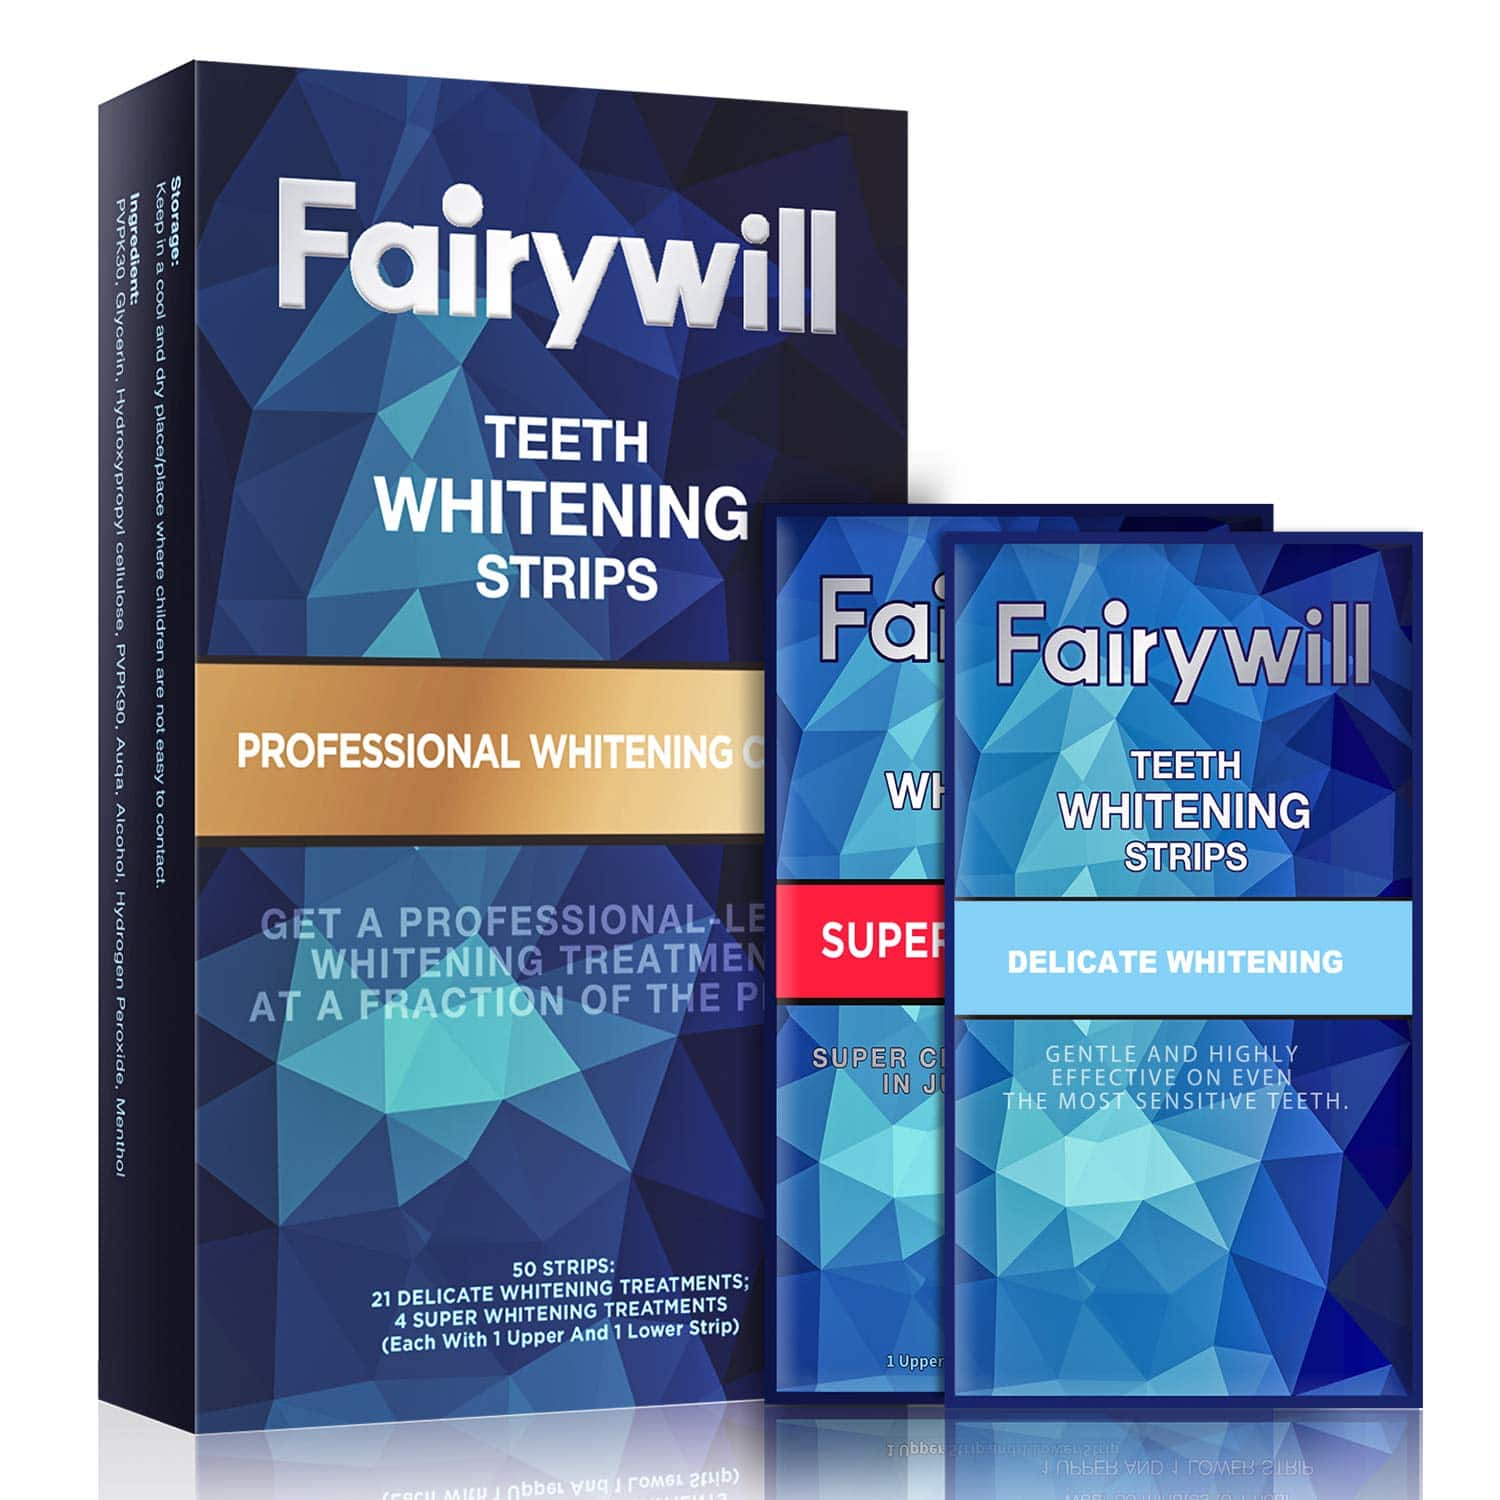 Fairywill Teeth Whitening Strips Pack of 50 Pcs Professional and Express Whitening Strips Kits Remove Stains and Whiten Teeth in 1 Hour $12.49